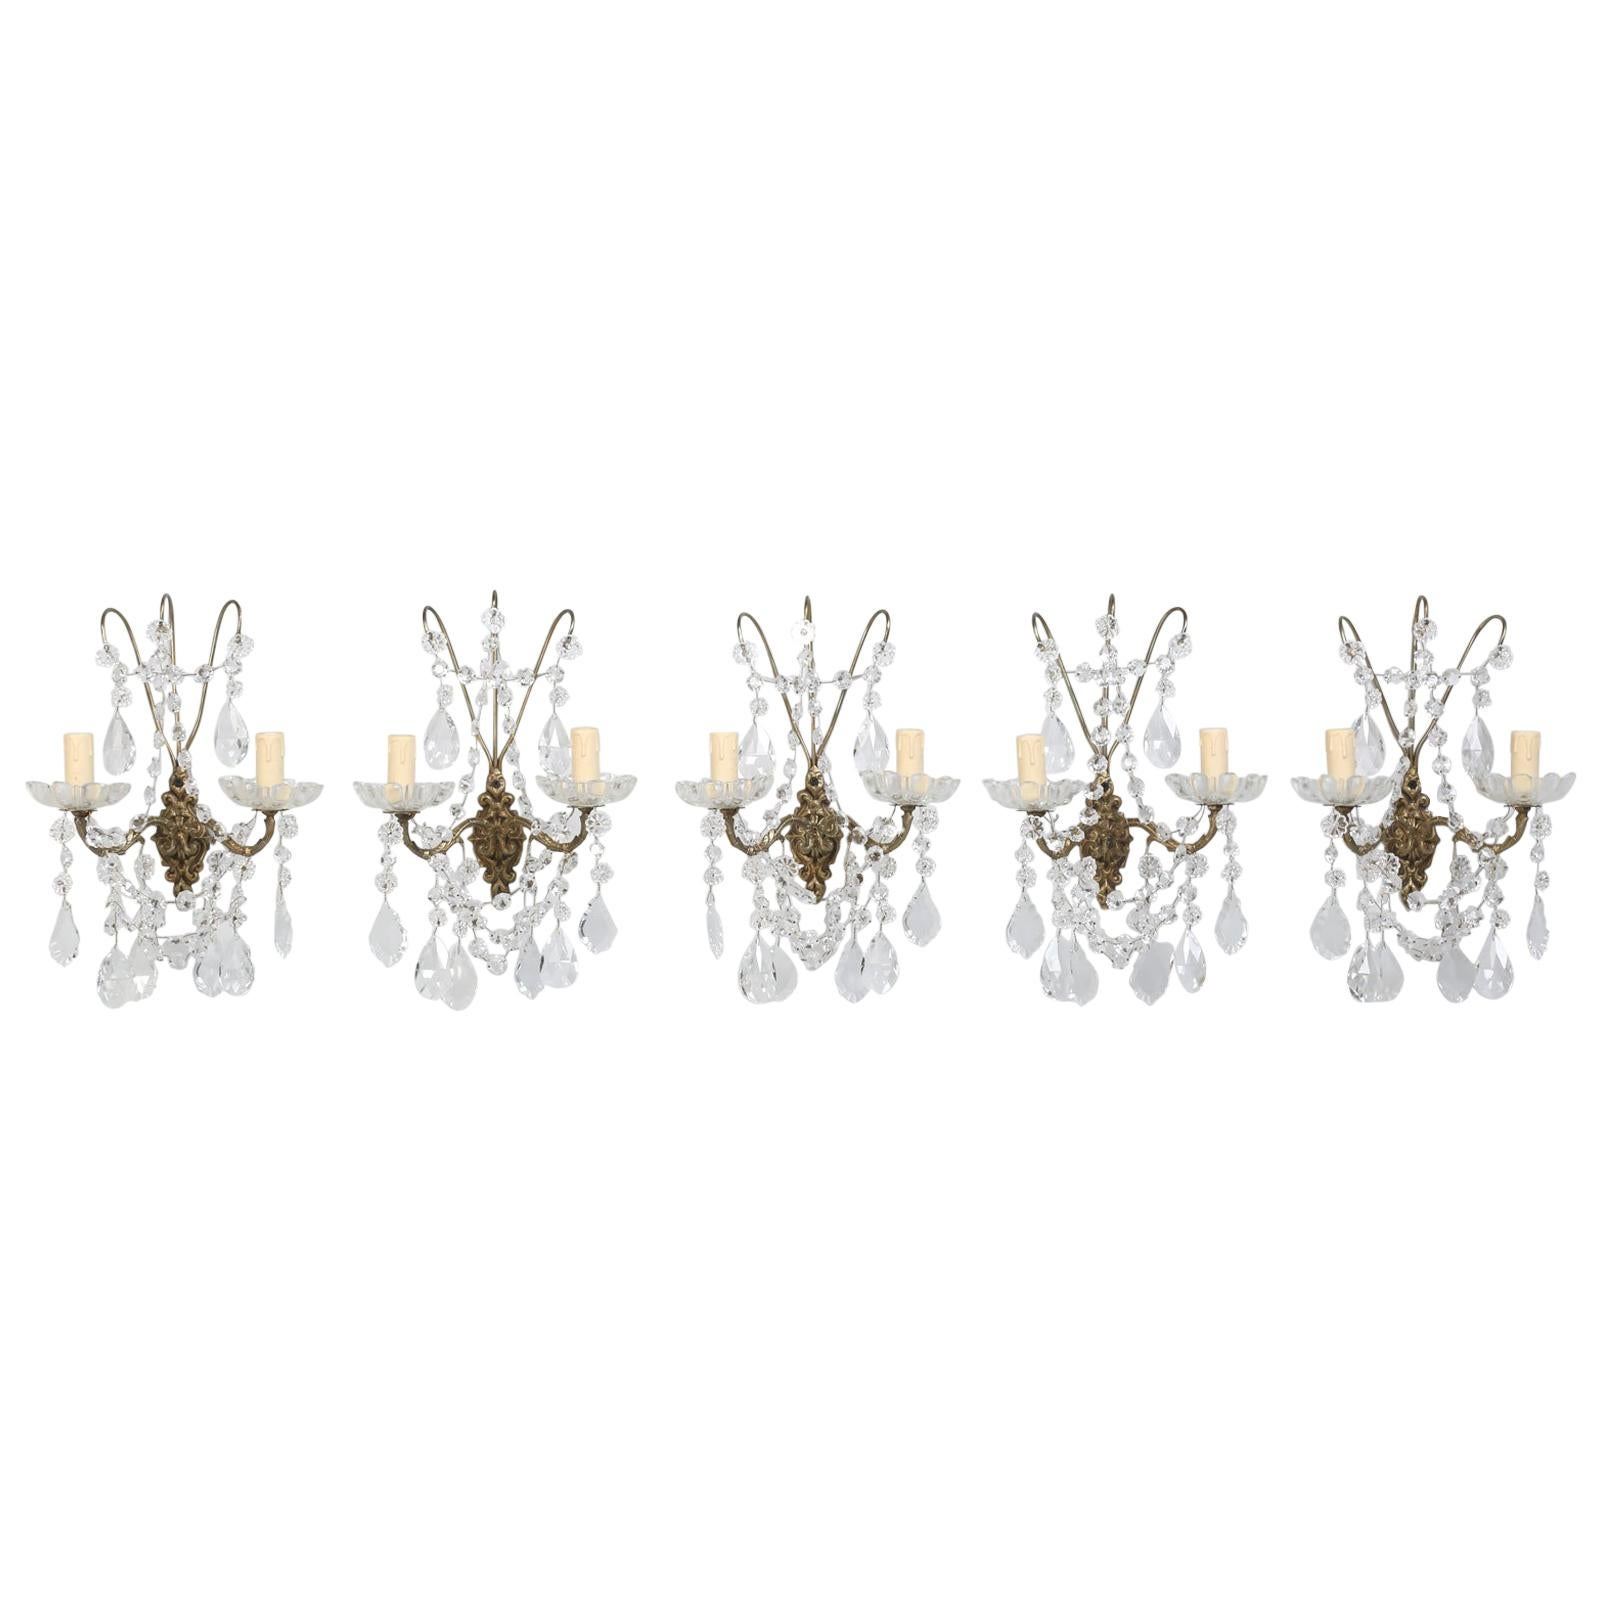 French Crystal and Brass 2-Light Sconces, Available Individually or in Pairs